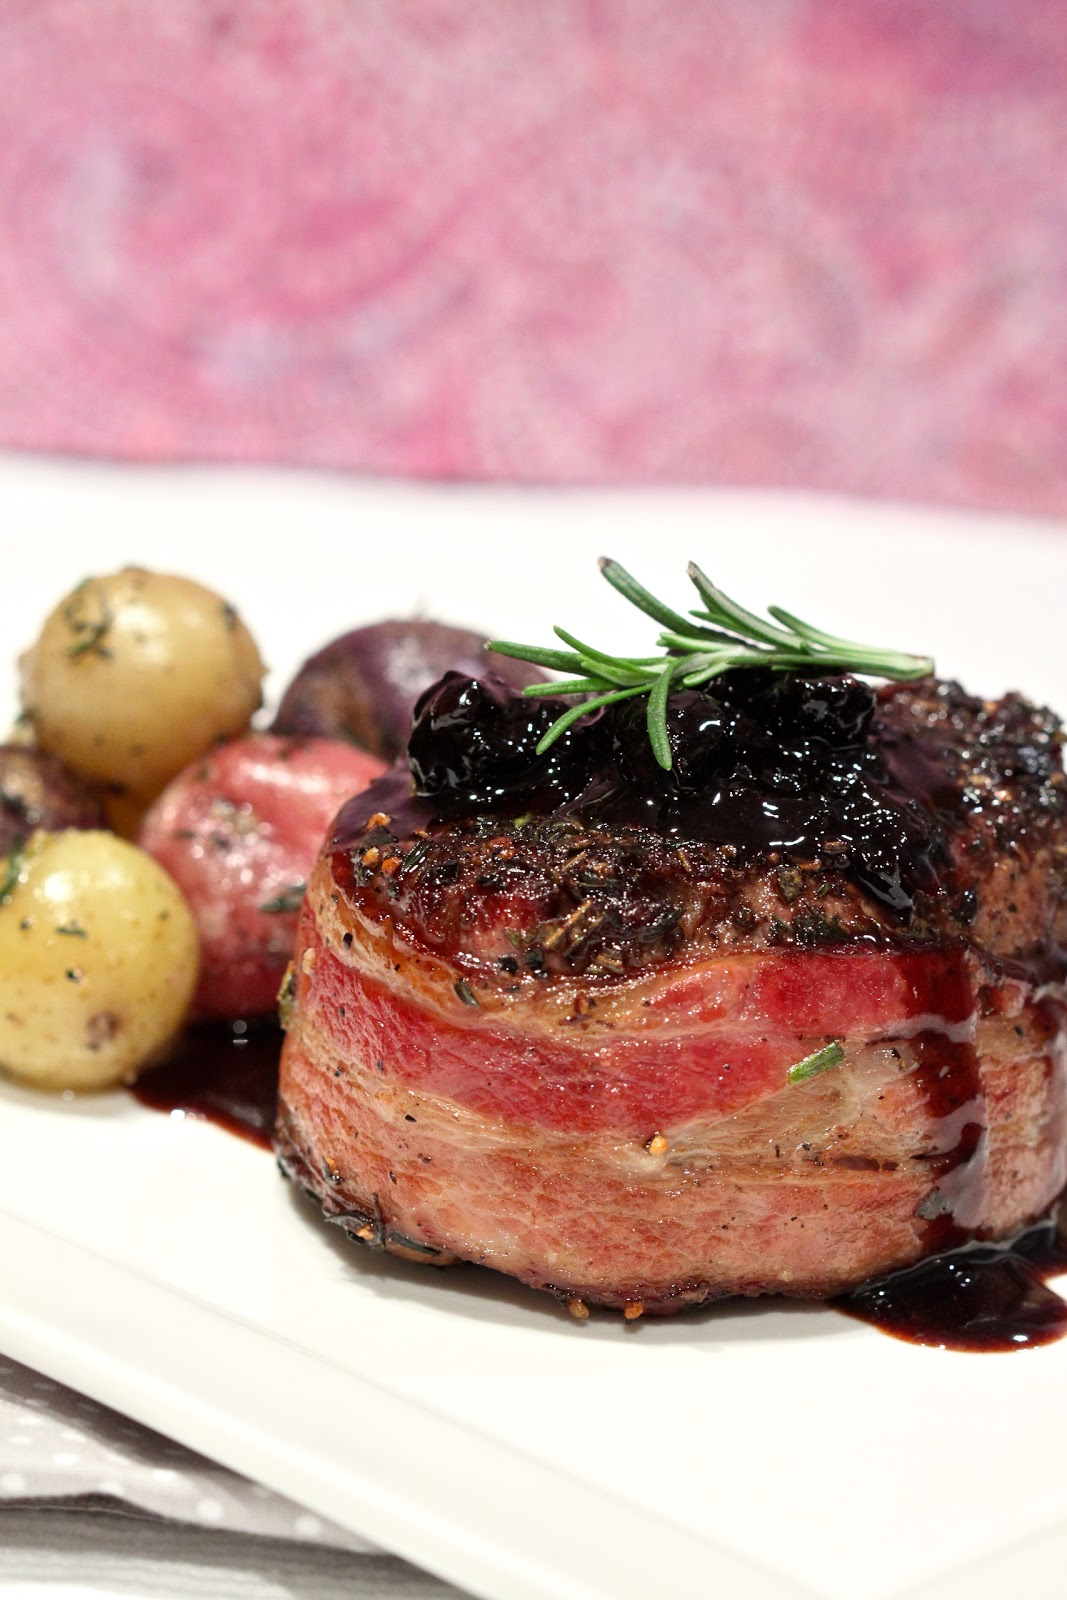 ... Living: Day 18: Bacon Wrapped Beef Tenderloin with Dry Cherry Sauce